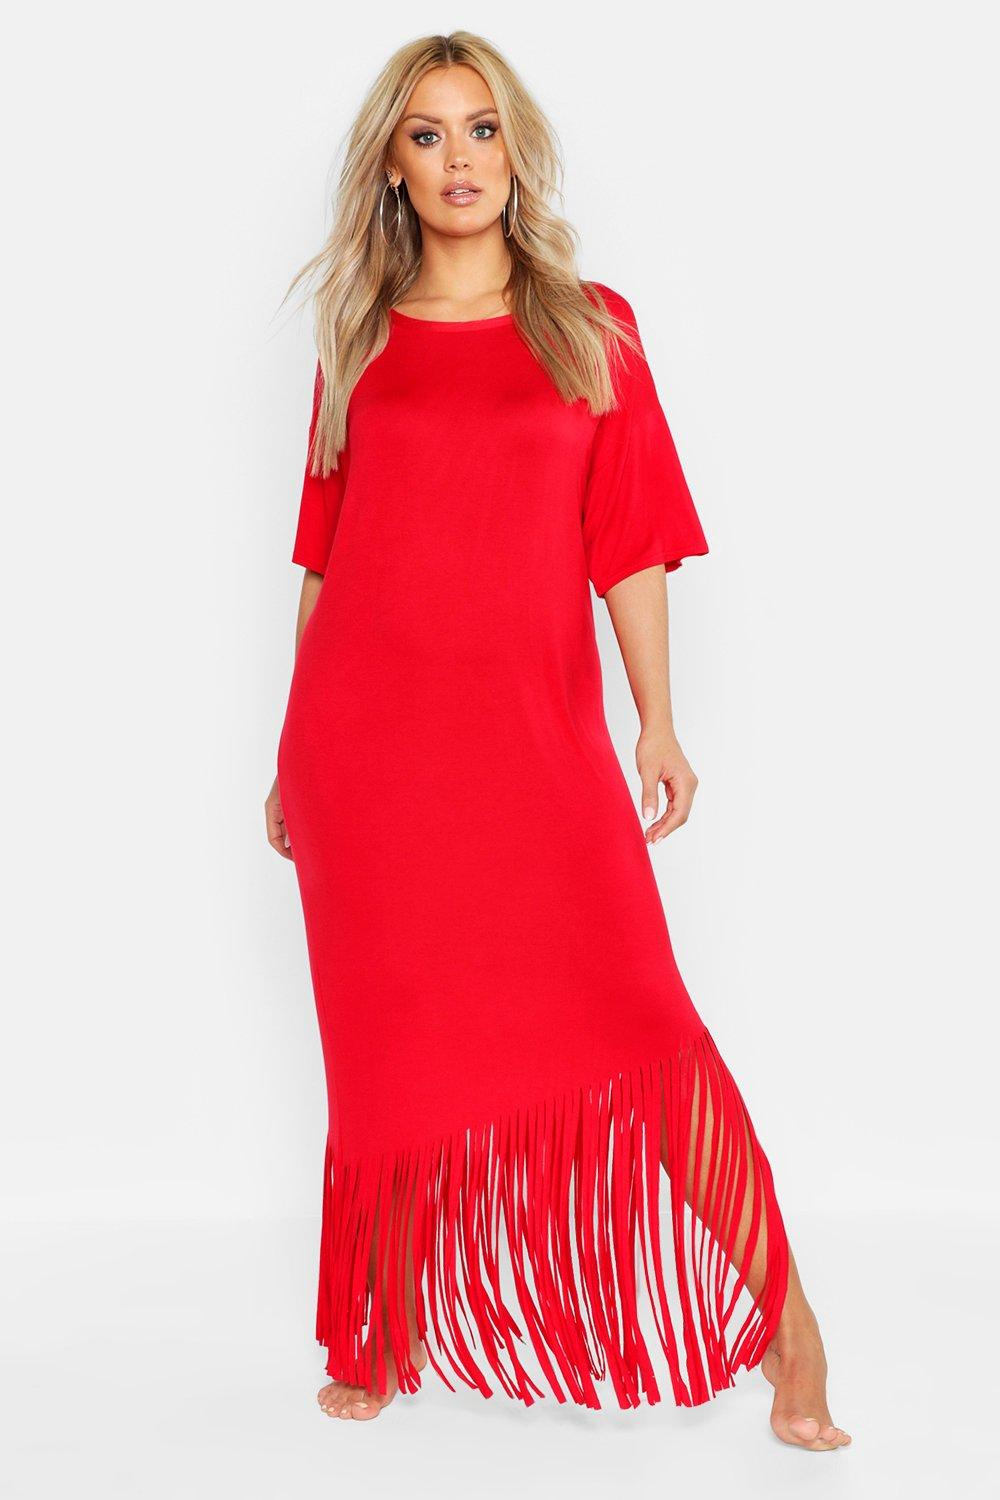 boohoo Womens Plus Tassel Beach Maxi Dress - Red - 18, Red